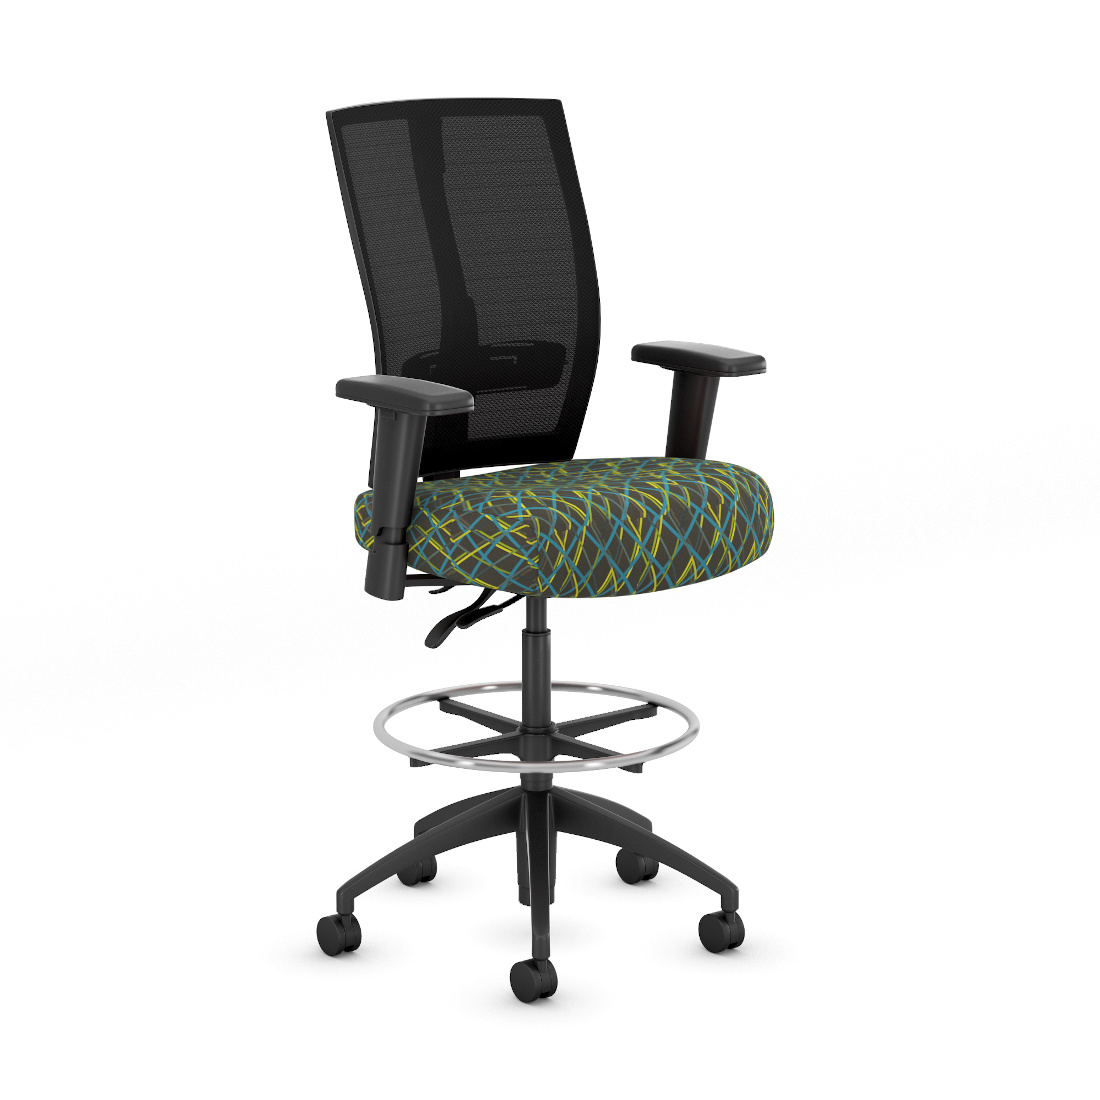 3d visualization white background rendering ergonomic seating